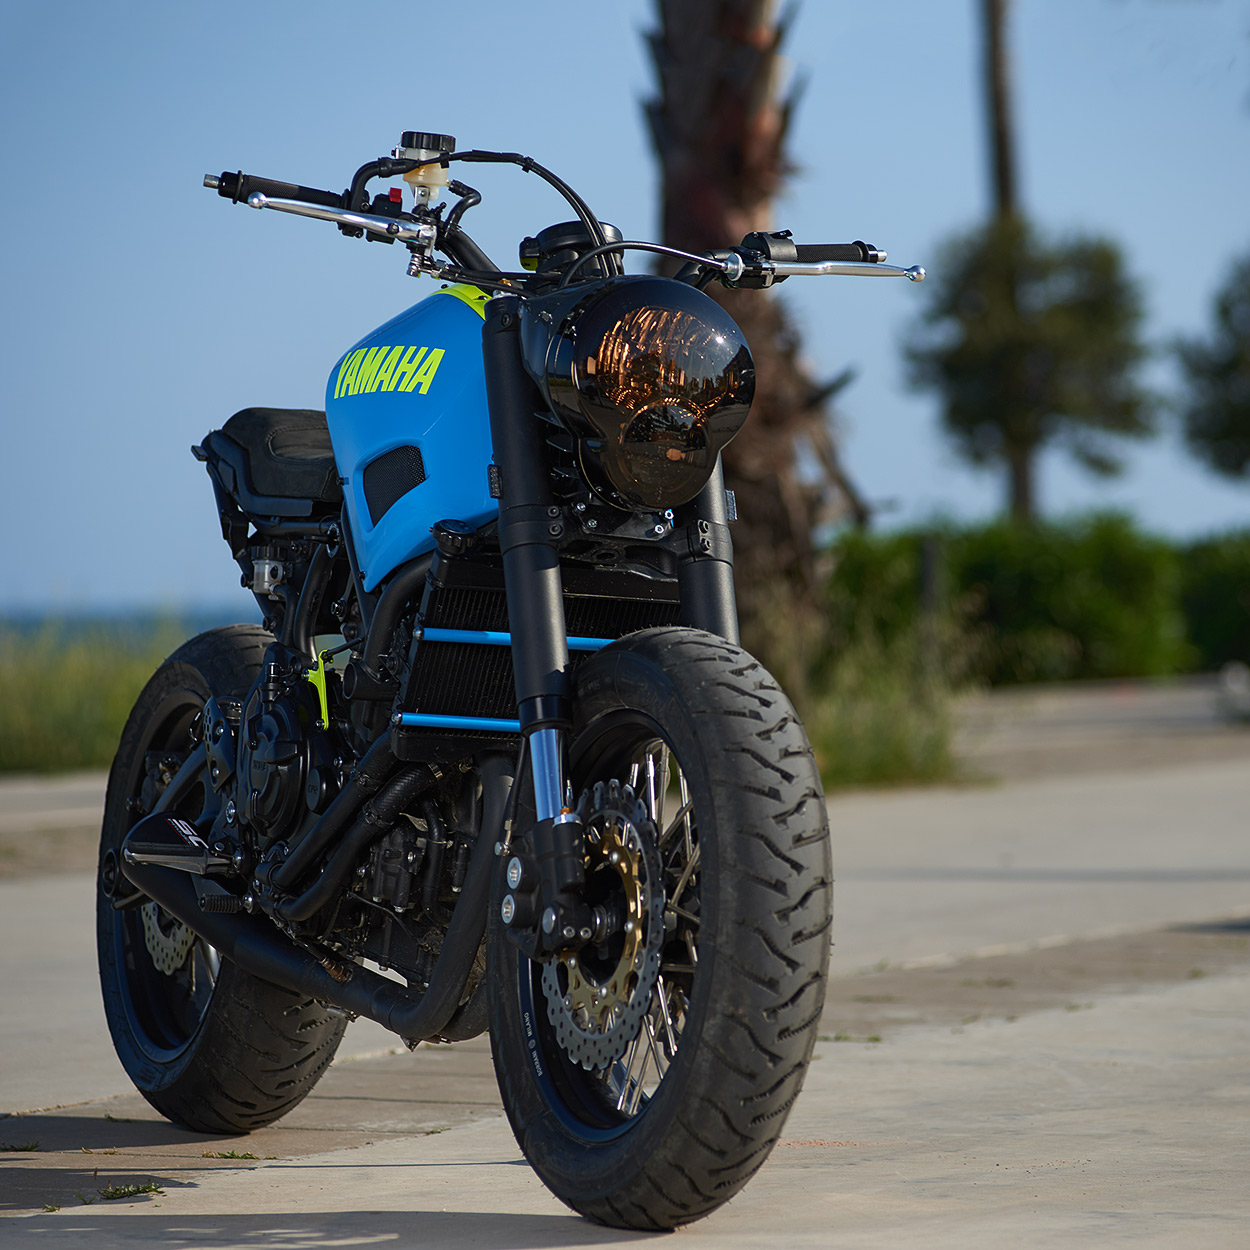 I Really Like This Crazy Style David Has Created Says Yamahas Cristian Barelli The Tough Street Tracker Feel Fits Well With XSR700